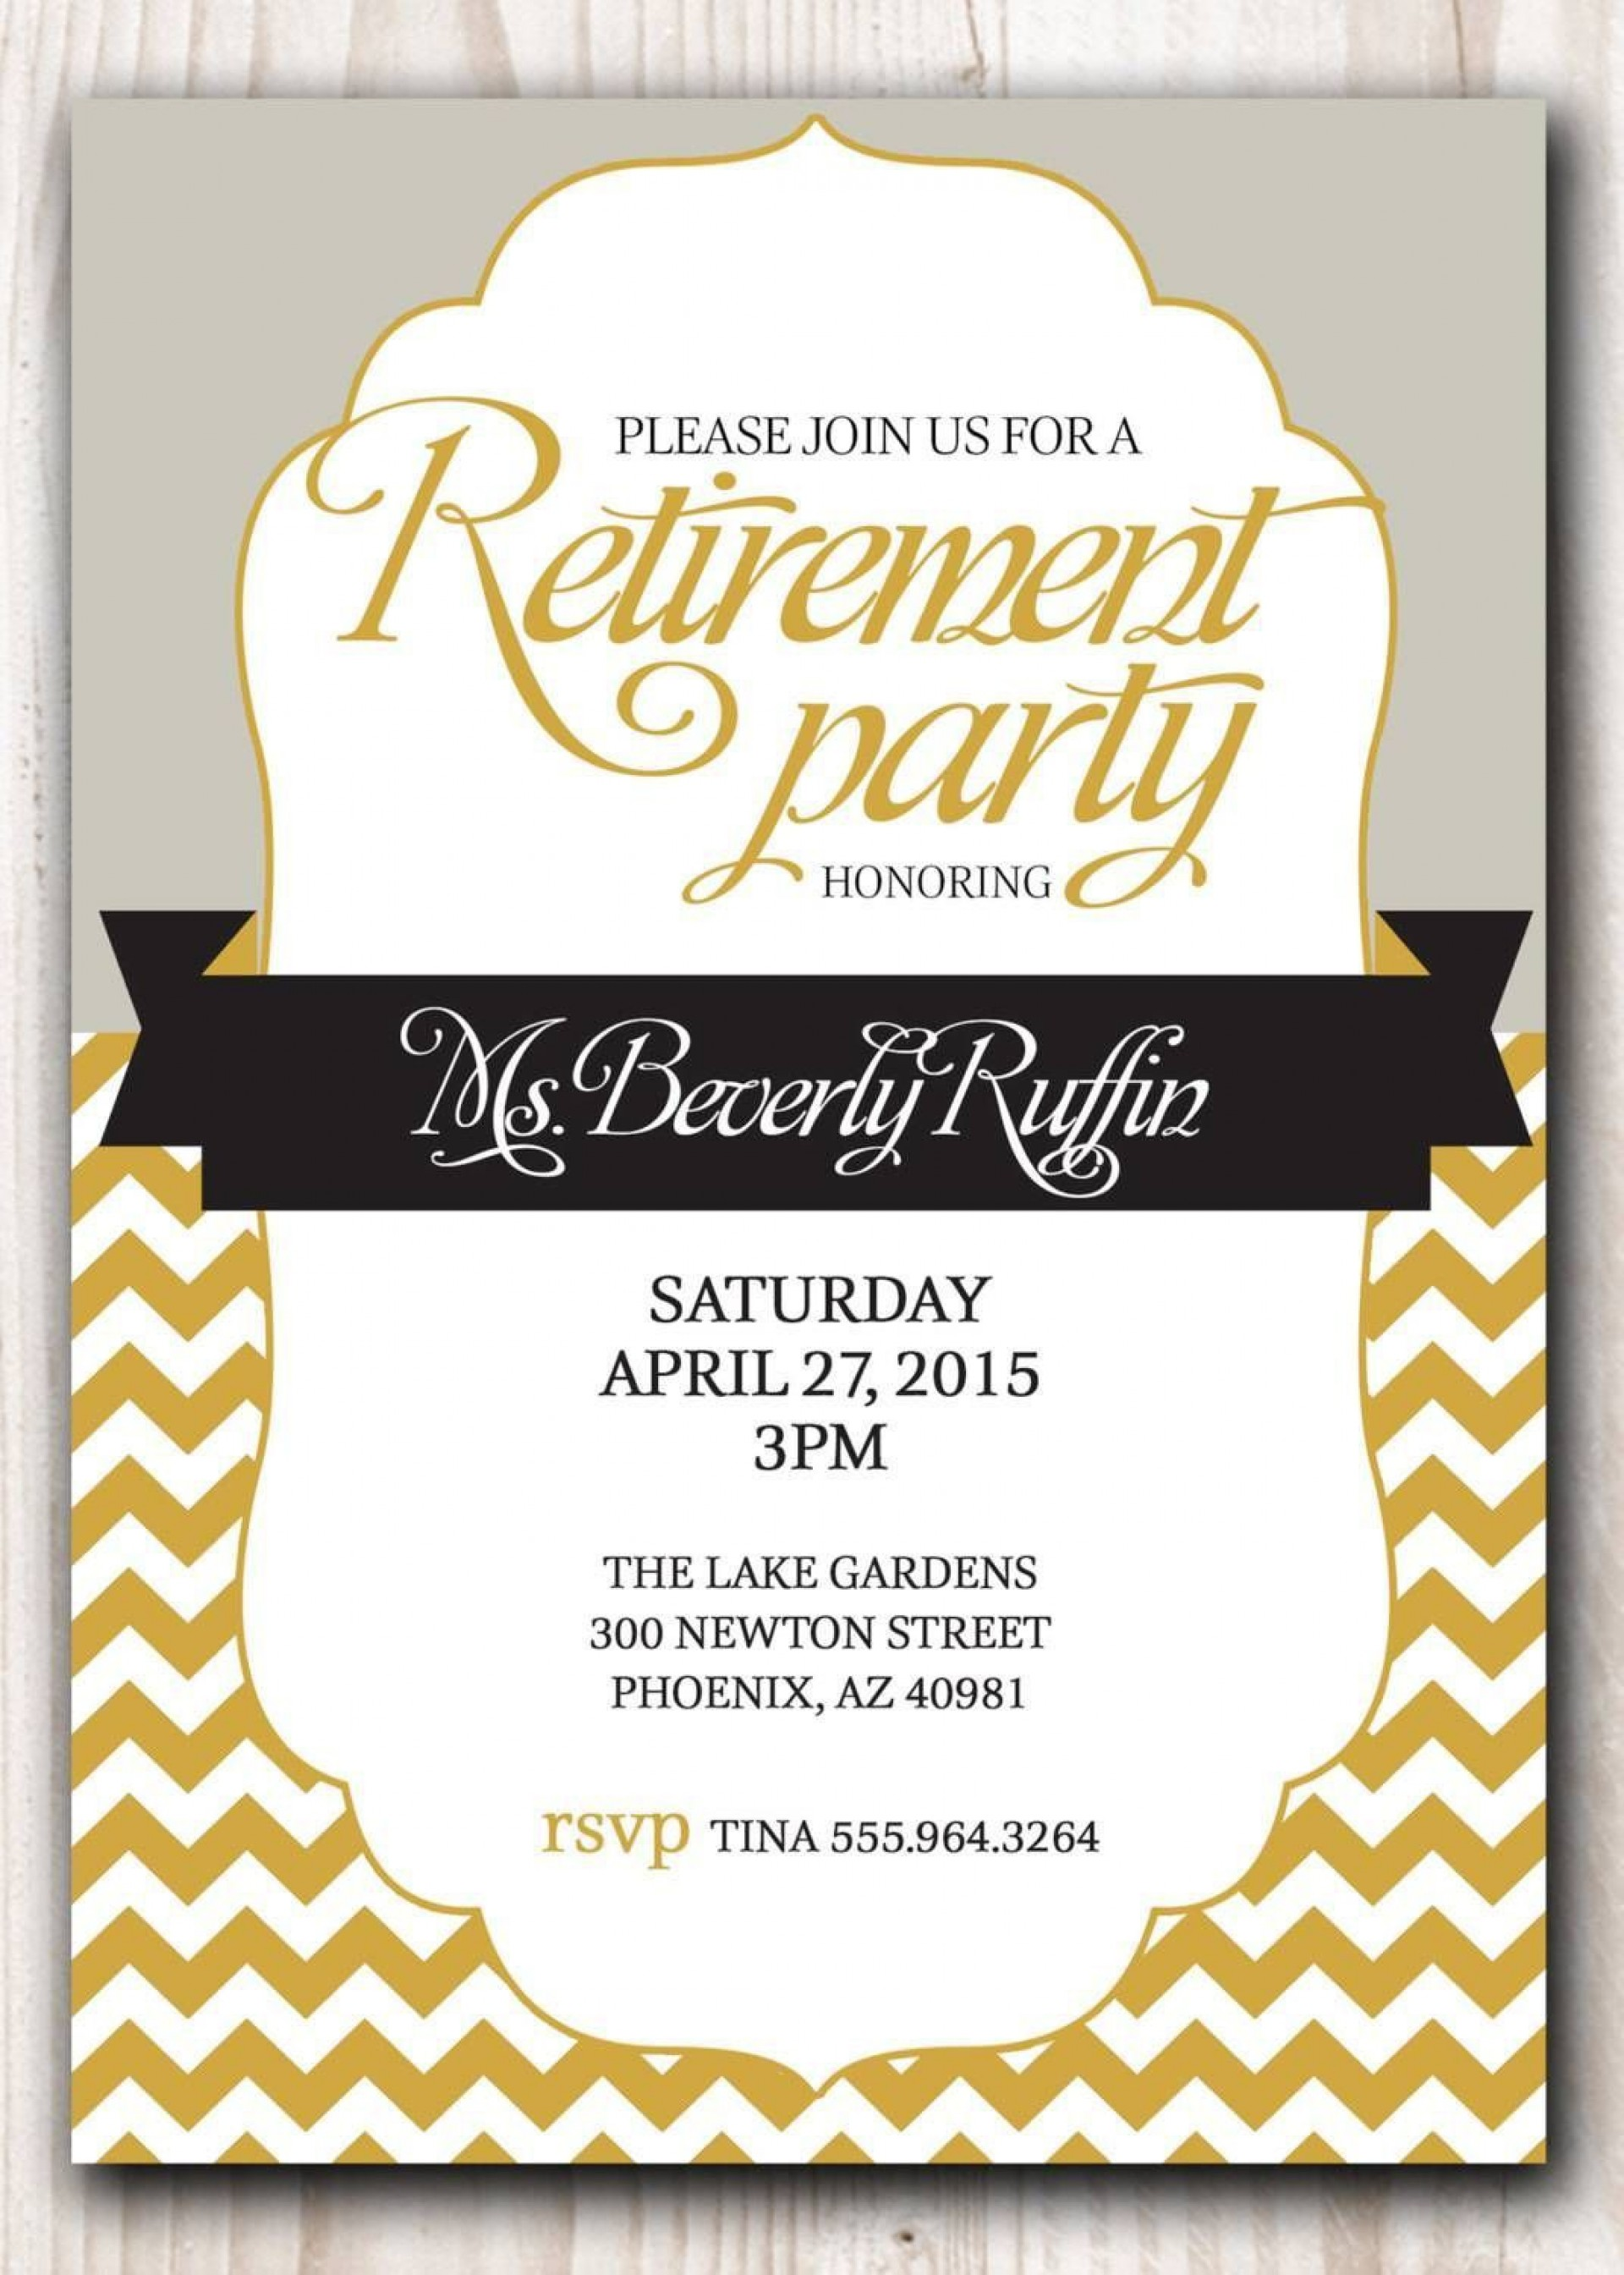 006 Unforgettable Retirement Party Invitation Template Picture  Templates For Free Nurse M Word1920